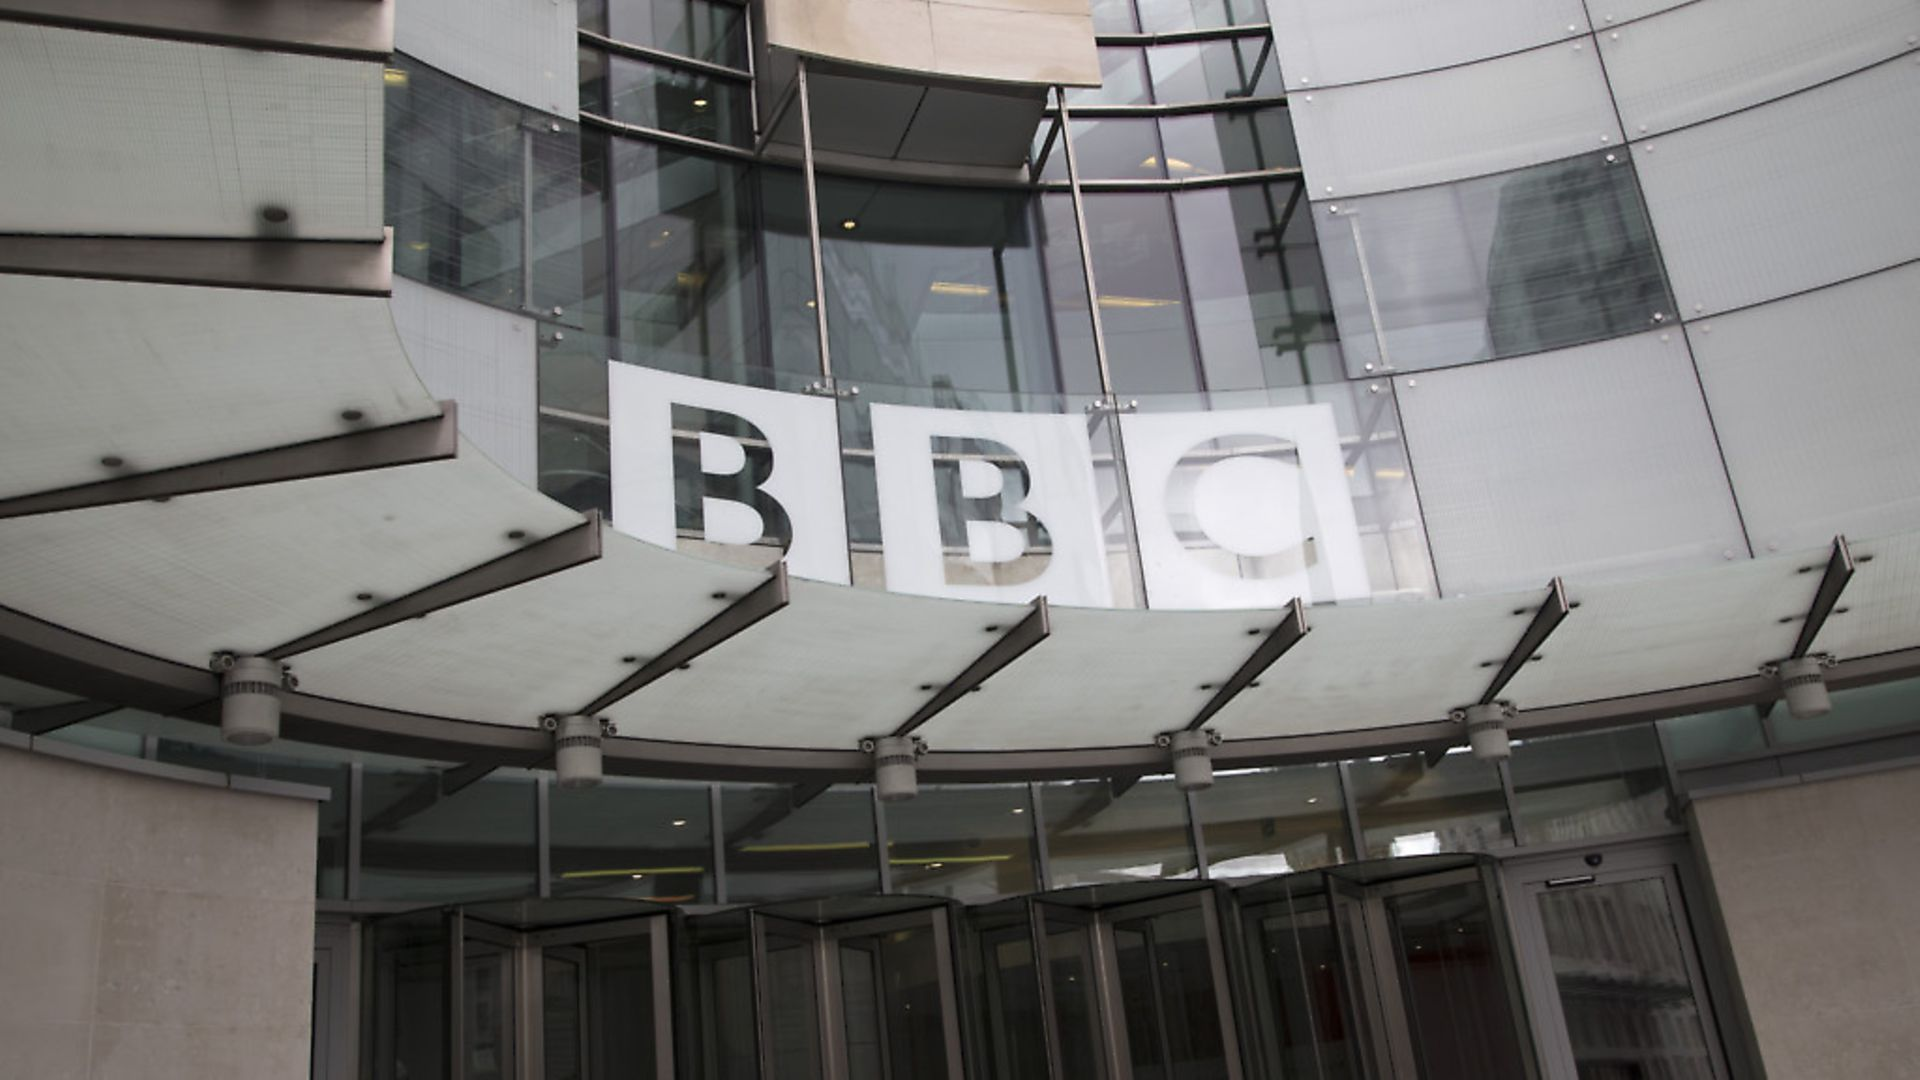 BBC headquarters. (Photo by Mike Kemp/In Pictures via Getty Images) - Credit: In Pictures via Getty Images